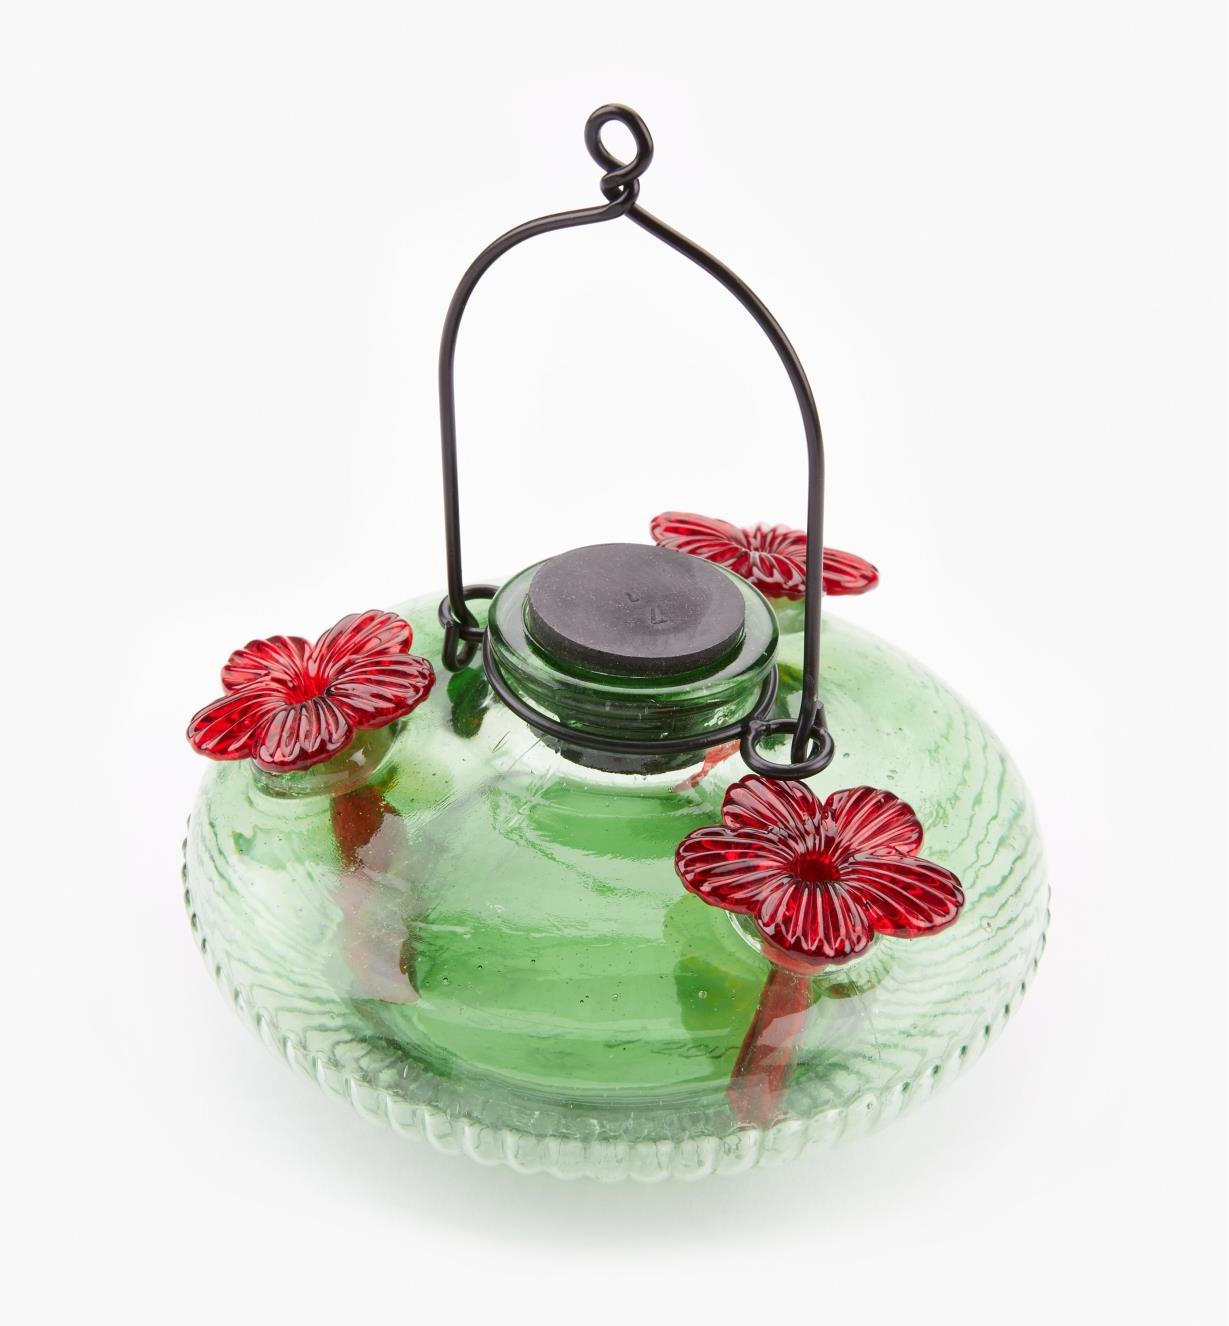 AG165 - Hand-Blown Glass Hummingbird Feeder, Green